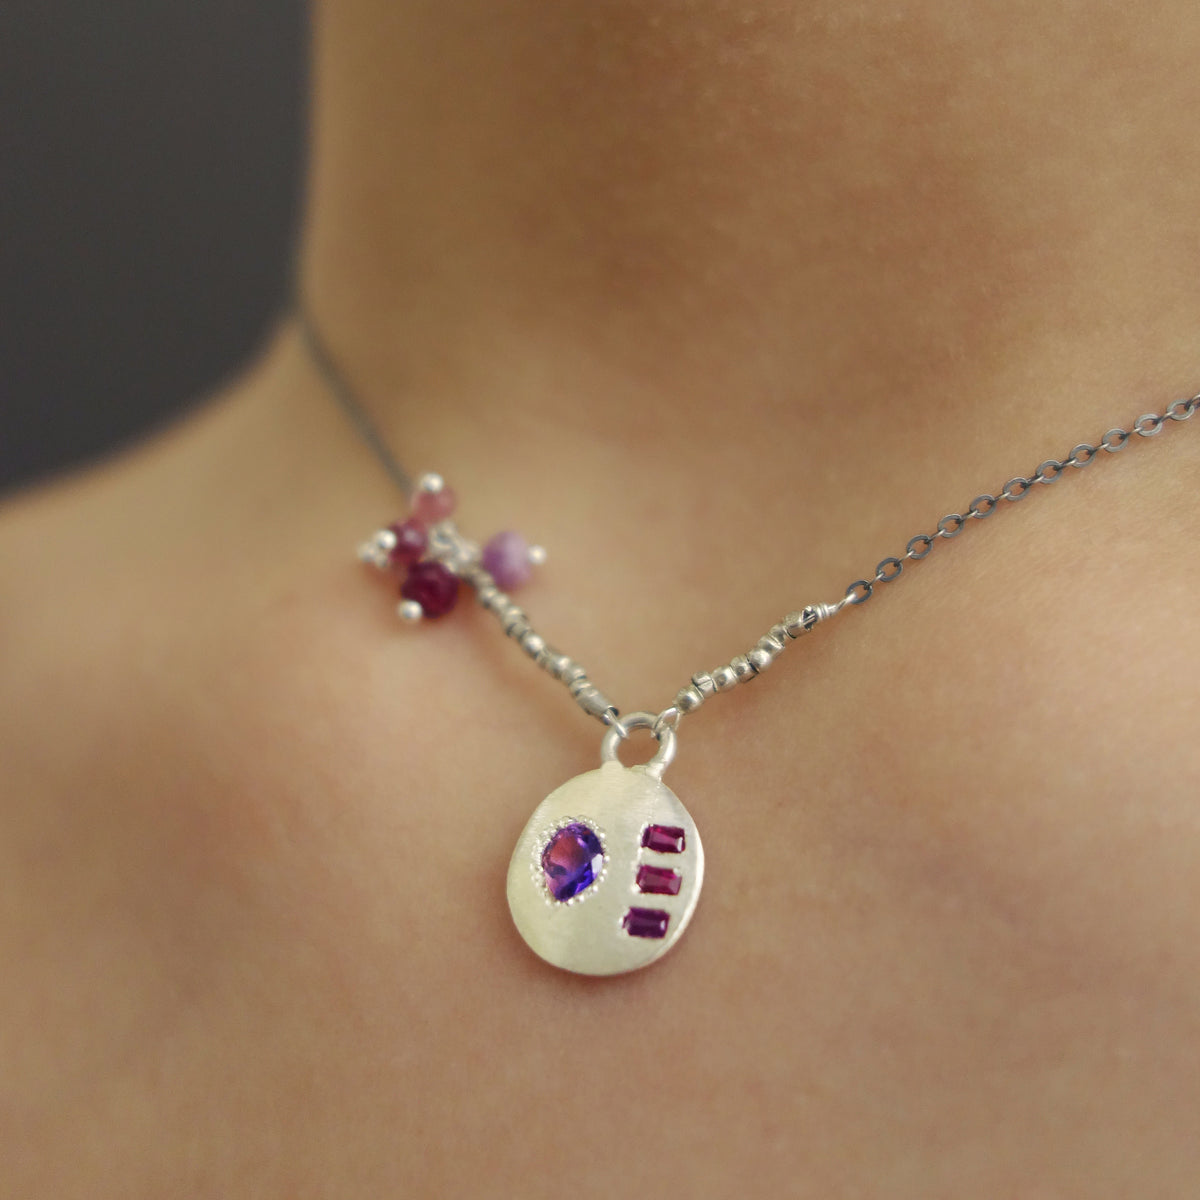 Don't Mess with My Heart: heart cut amethyst and ruby necklace